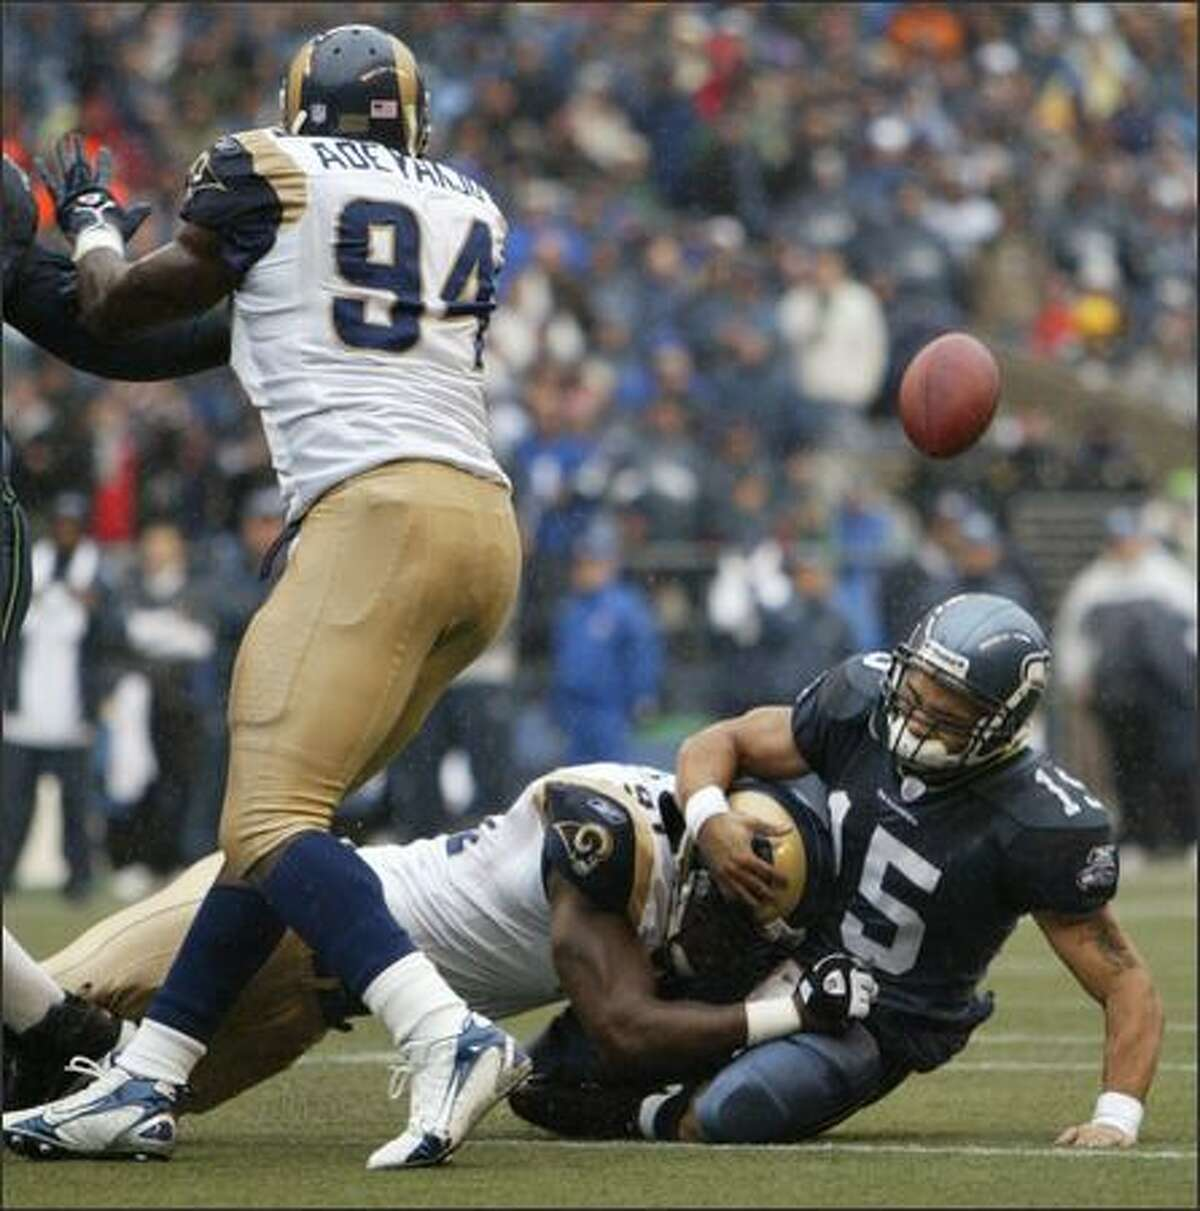 Seahawks quarterback Seneca Wallace fumbles after being sacked by Leonard Little. The play resulted in an 89-yard return by the Rams' Victor Adeyanju (94).